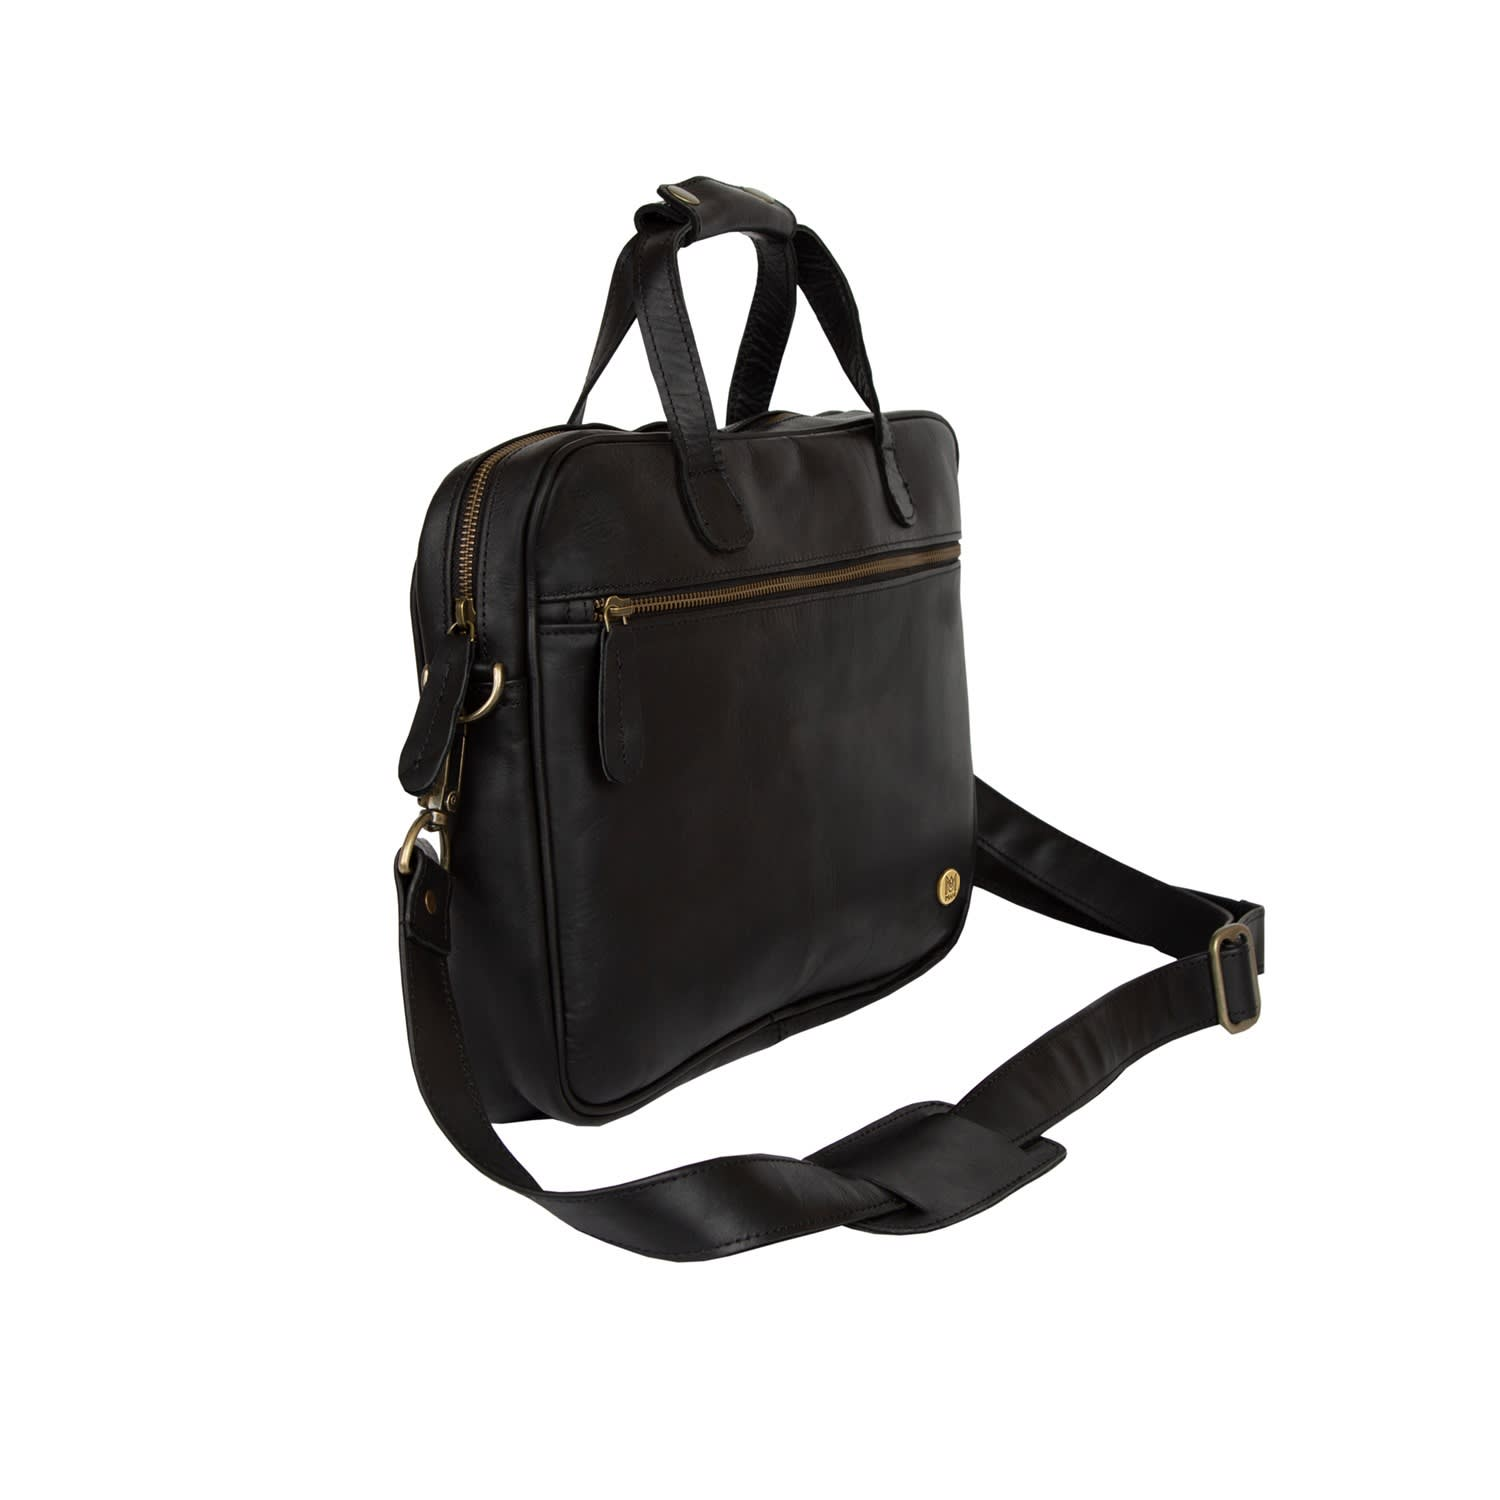 aecf697a3d Compact Leather Laptop Satchel Bag In Black image